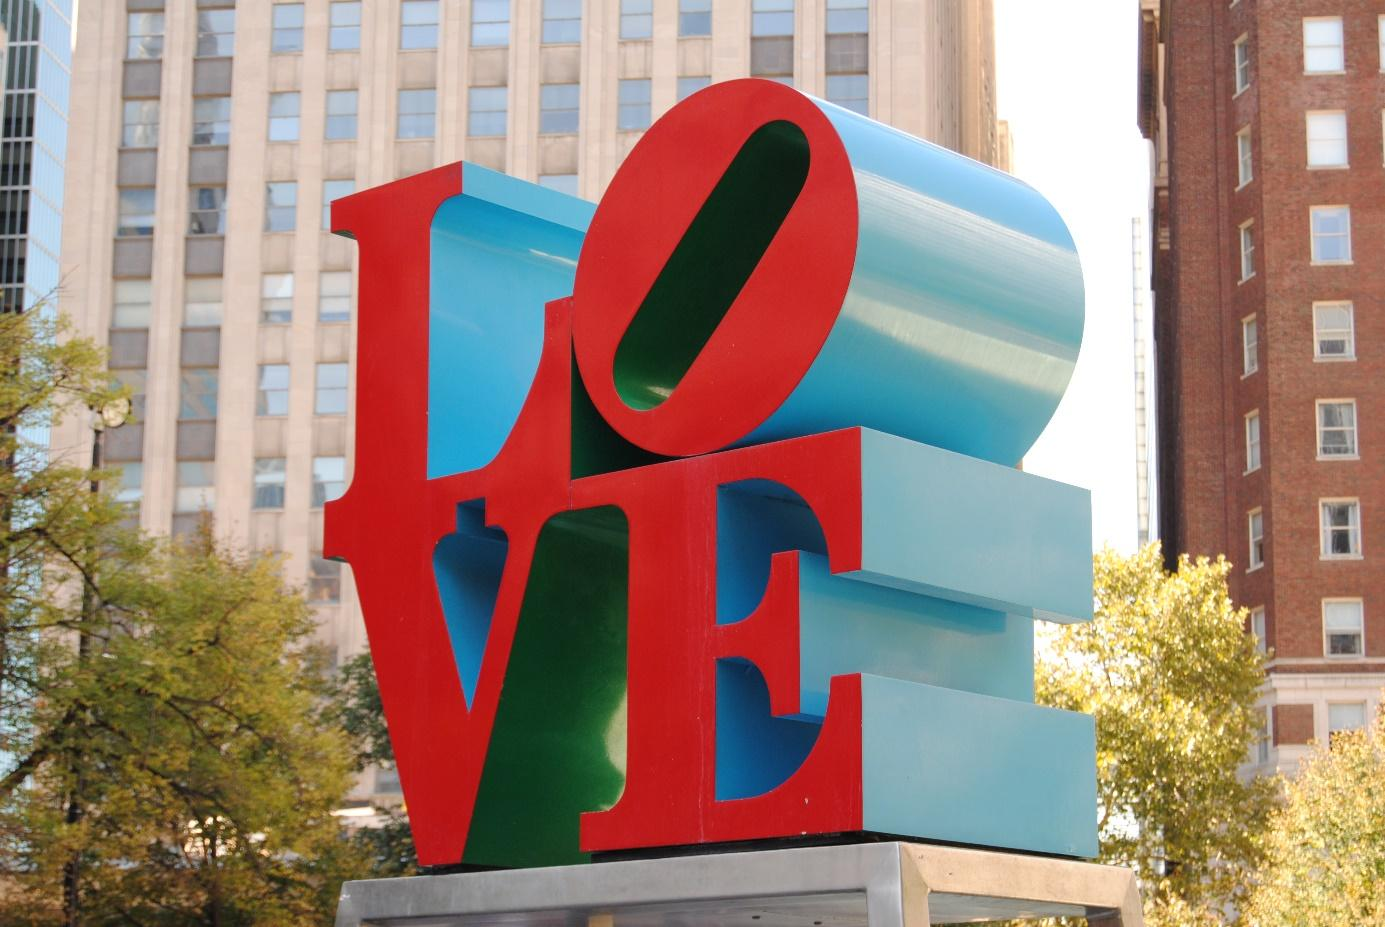 Philly's iconic Love Statue